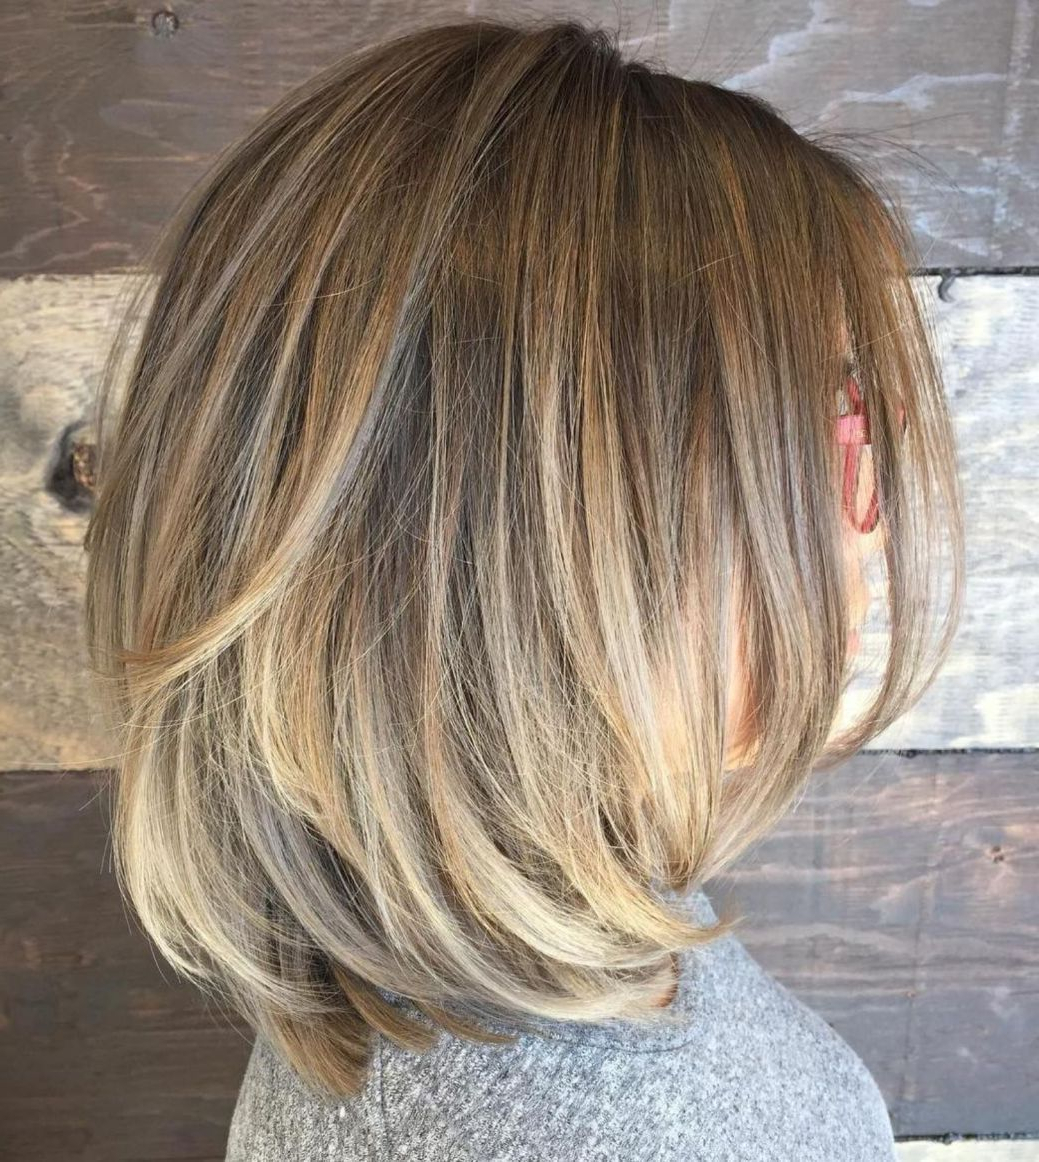 70 Brightest Medium Layered Haircuts To Light You Up In 2019 Within Trendy Thick Feathered Blonde Lob Hairstyles (View 8 of 20)